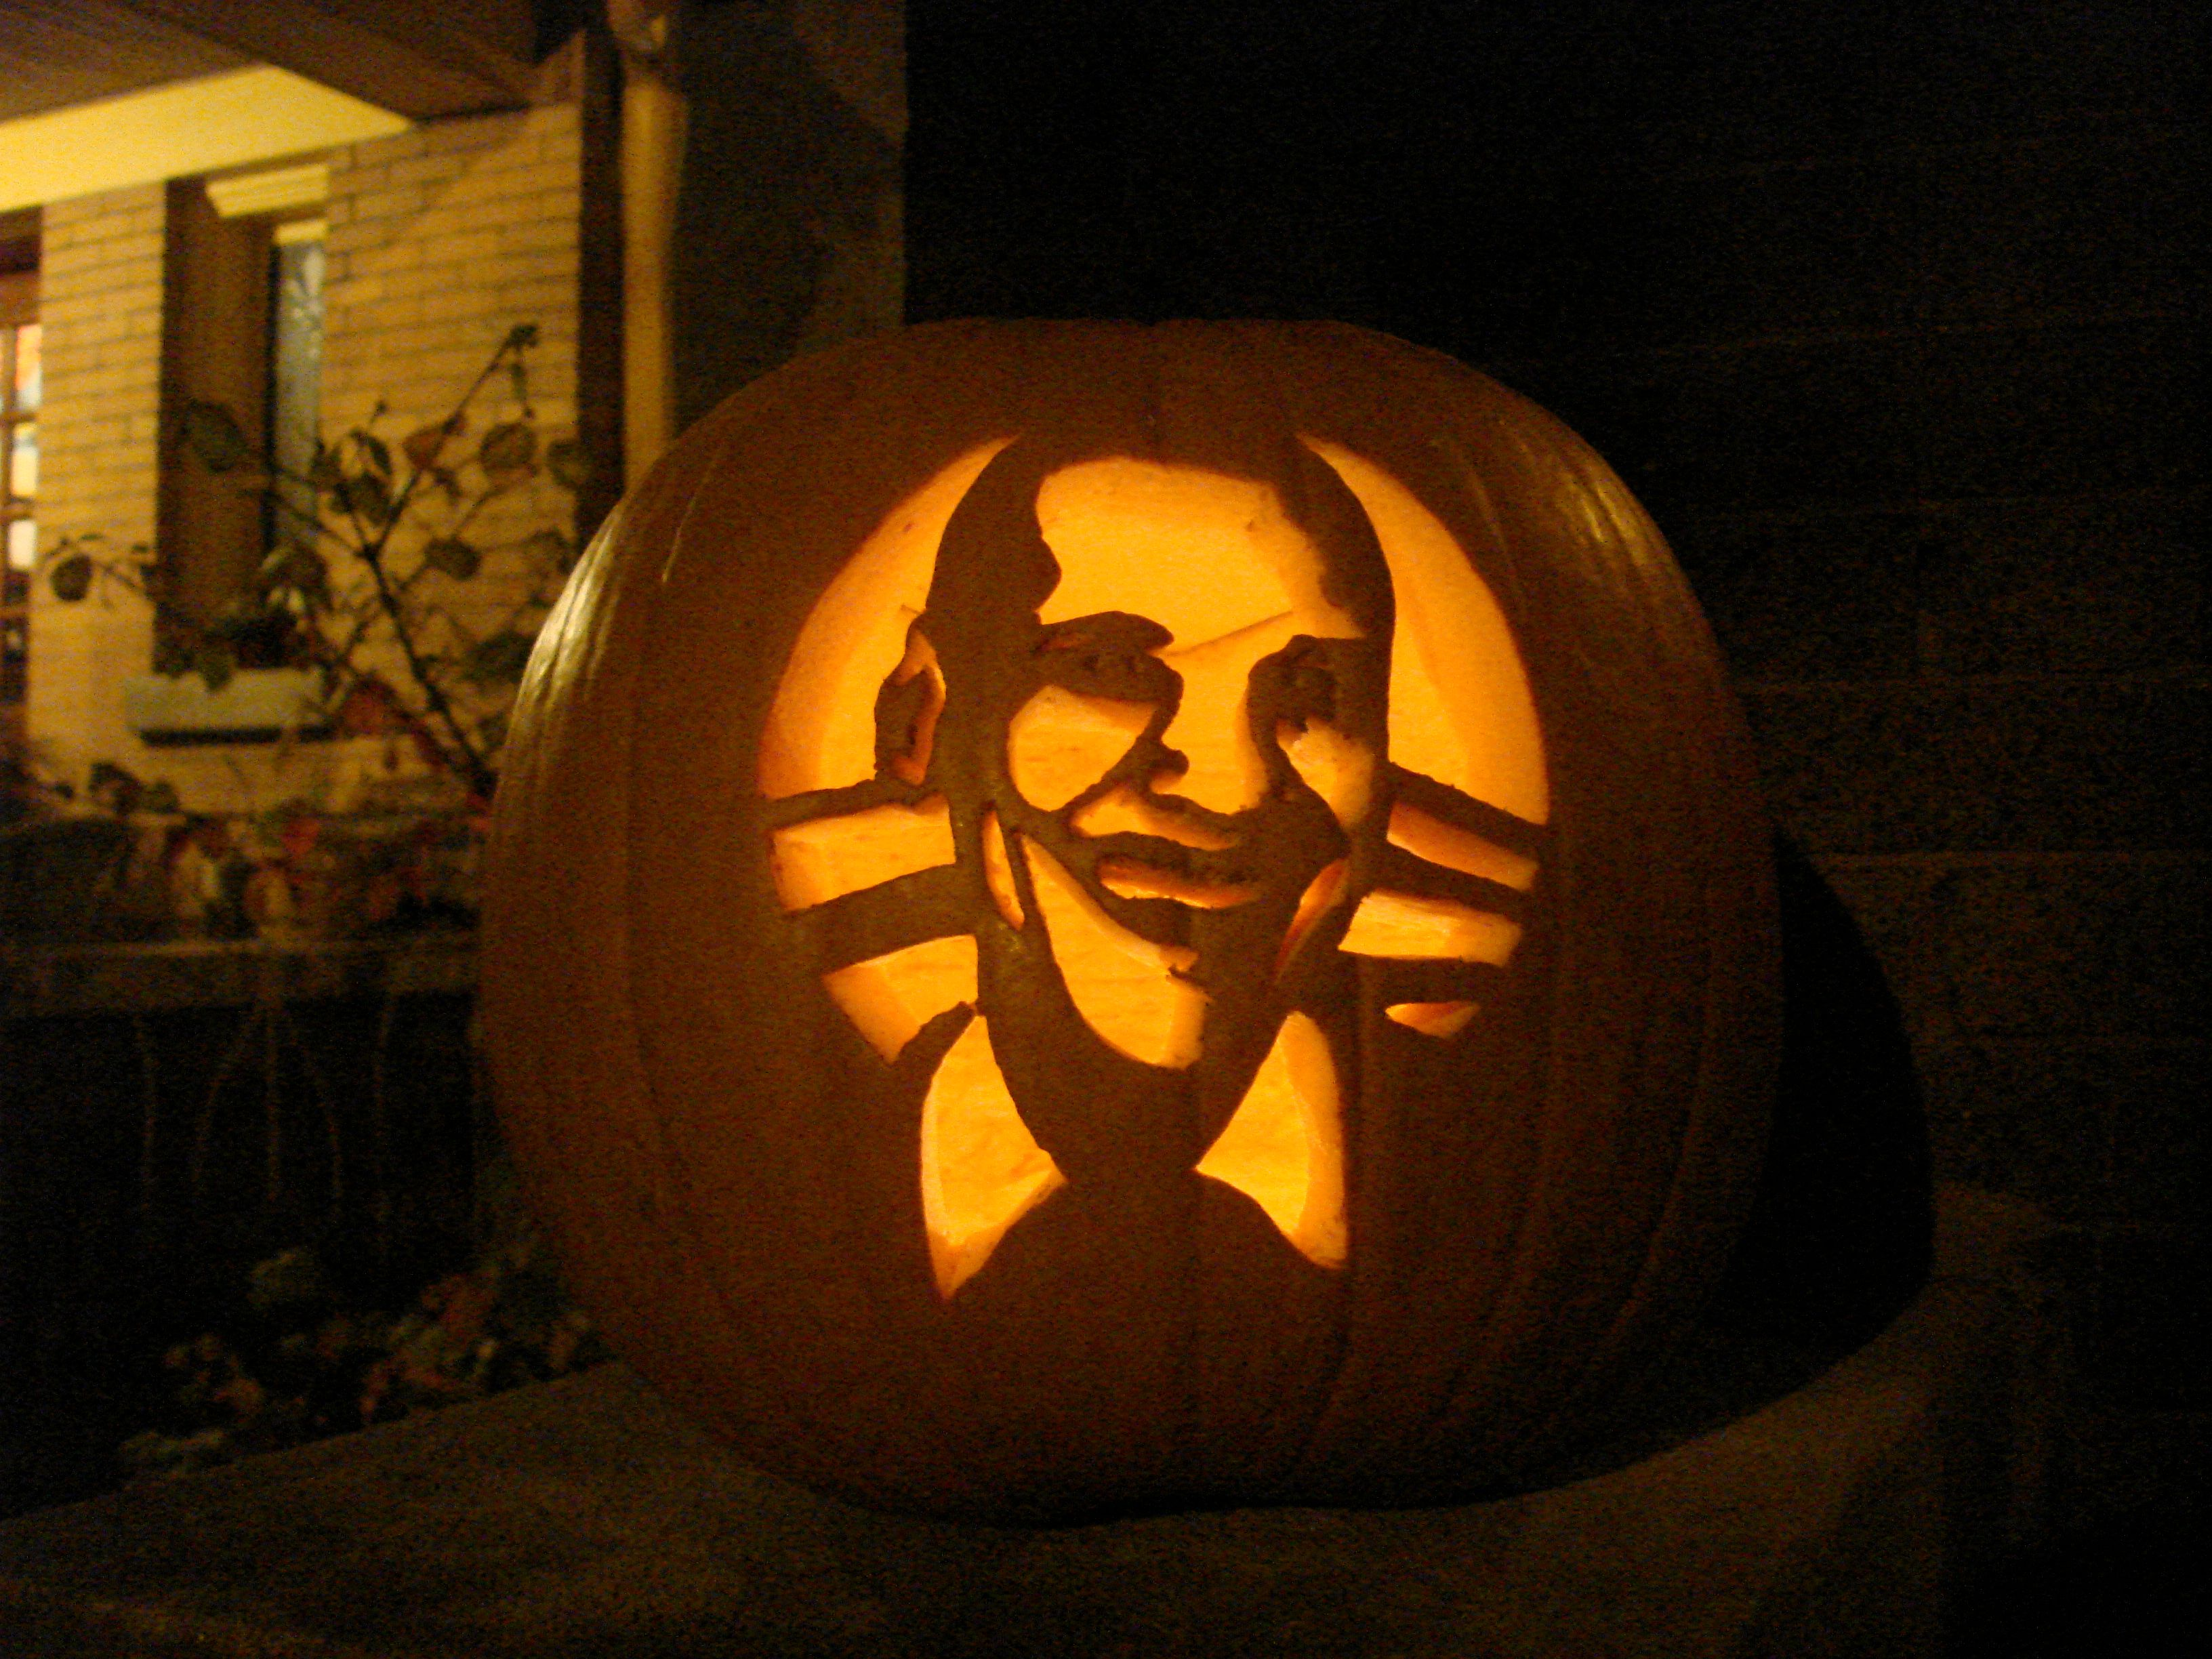 Creative halloween pumpkin carving ideas awesome designs